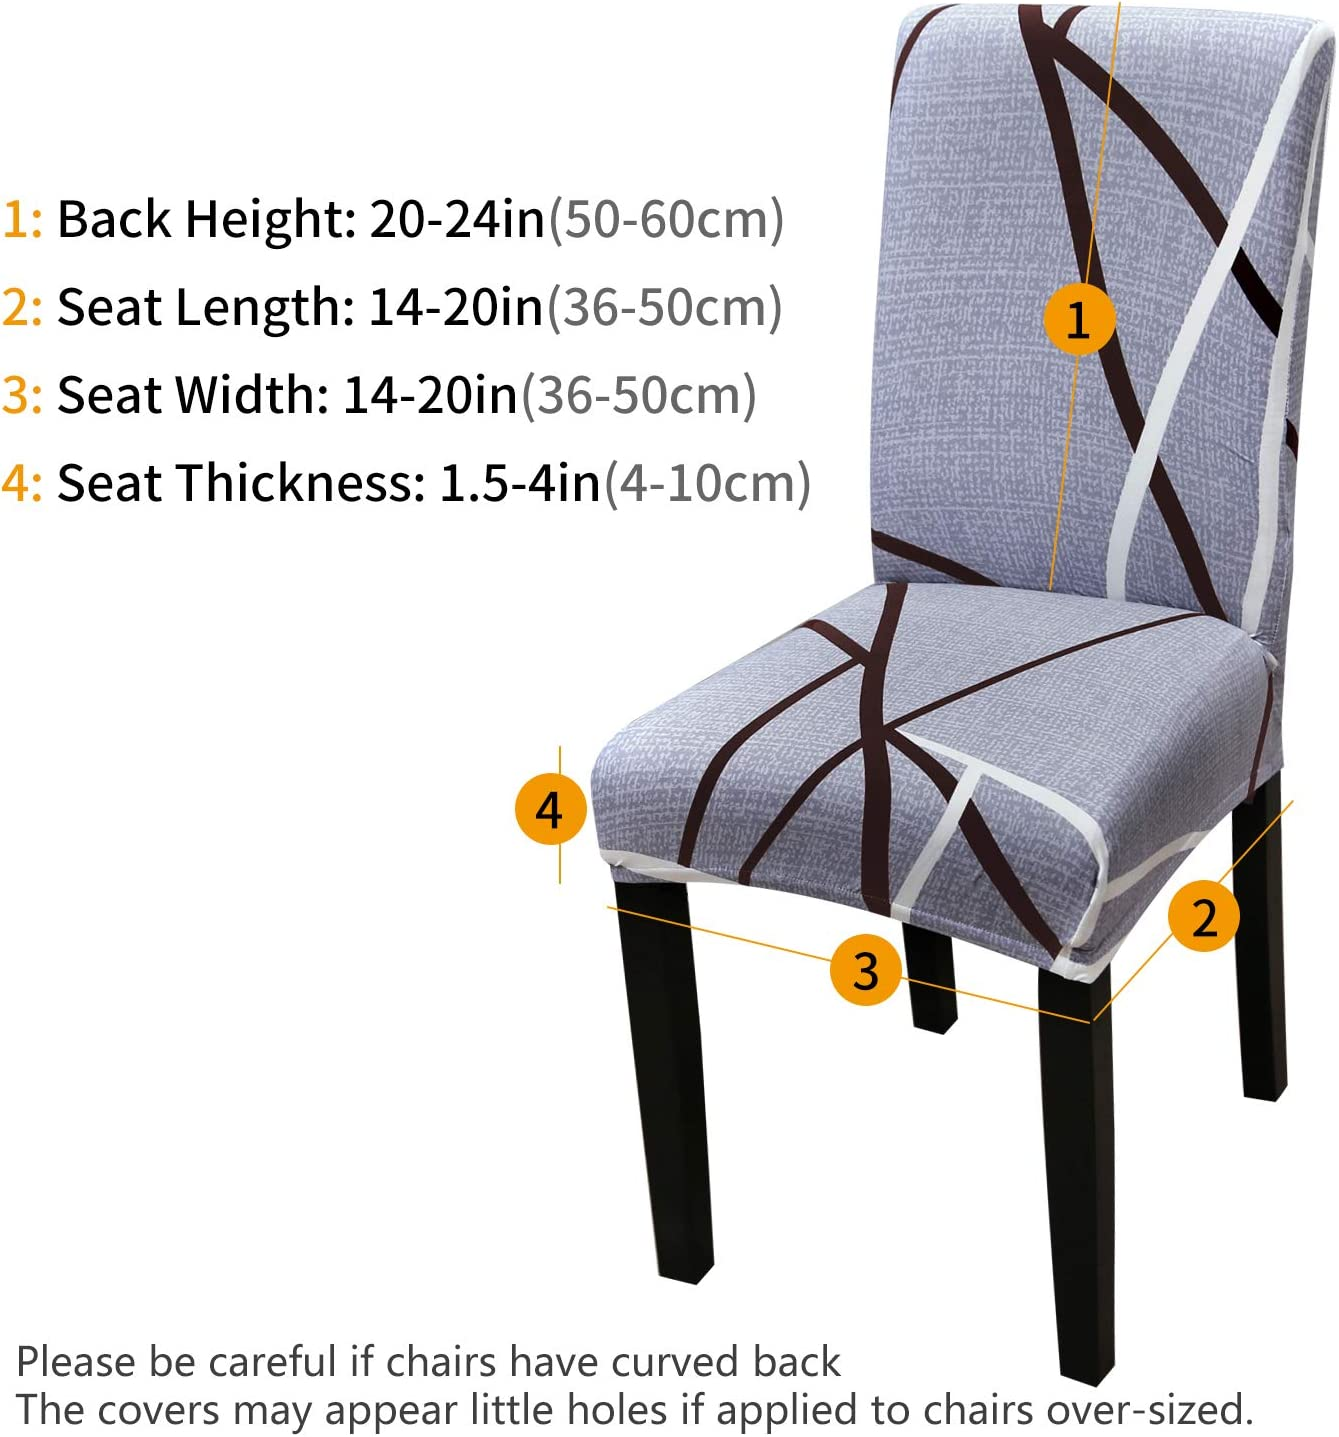 Modern Stretch Removable Washable Spandex Slipcovers for High Chairs 4//6 PCs Chair Protective Covers YISUN Spandex Dining Chair Covers